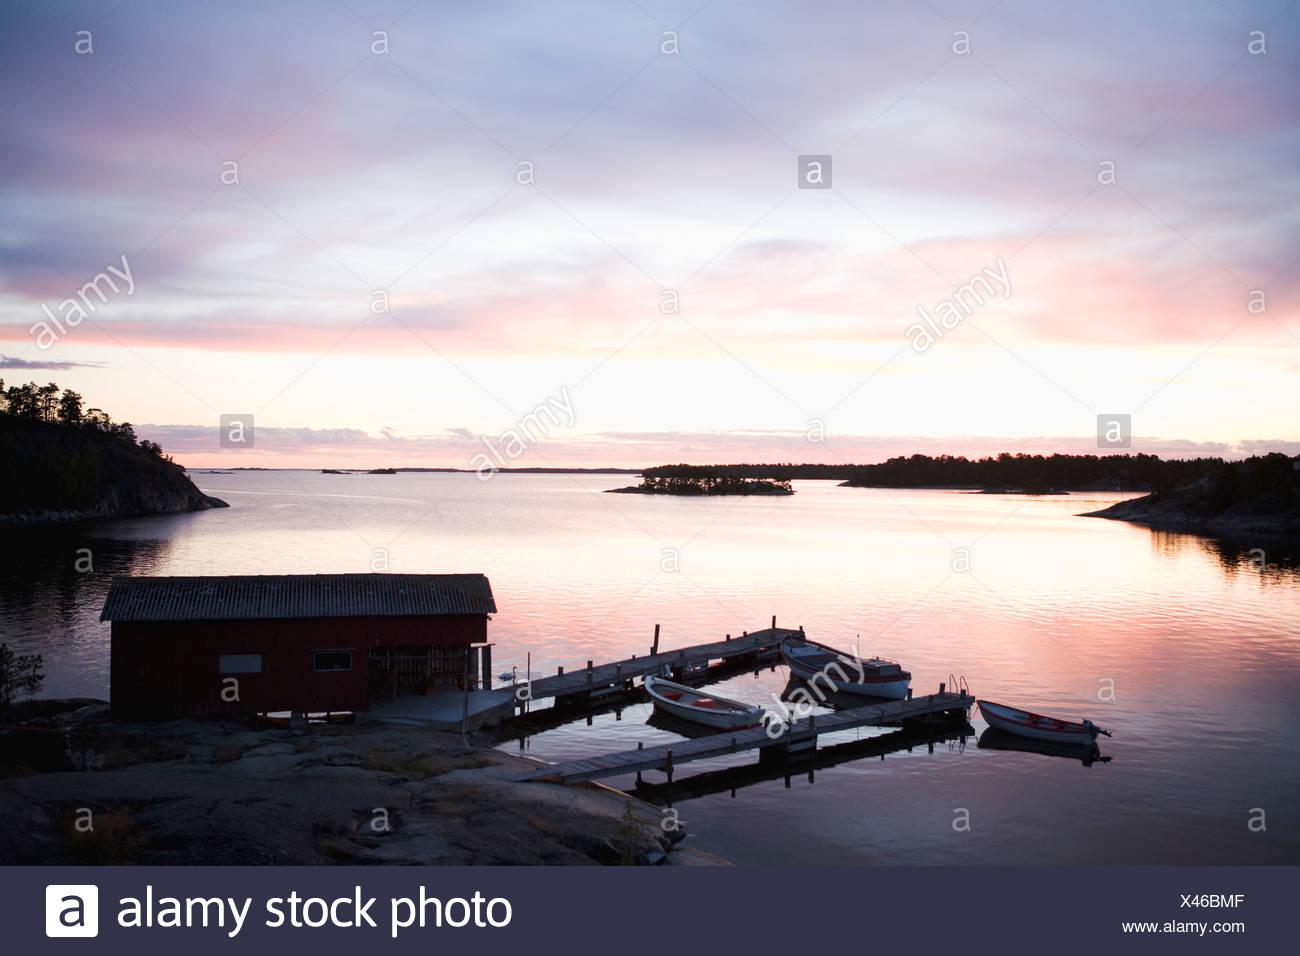 A boathouse in the sunset in the archipelago of Stockholm Sweden. - Stock Image